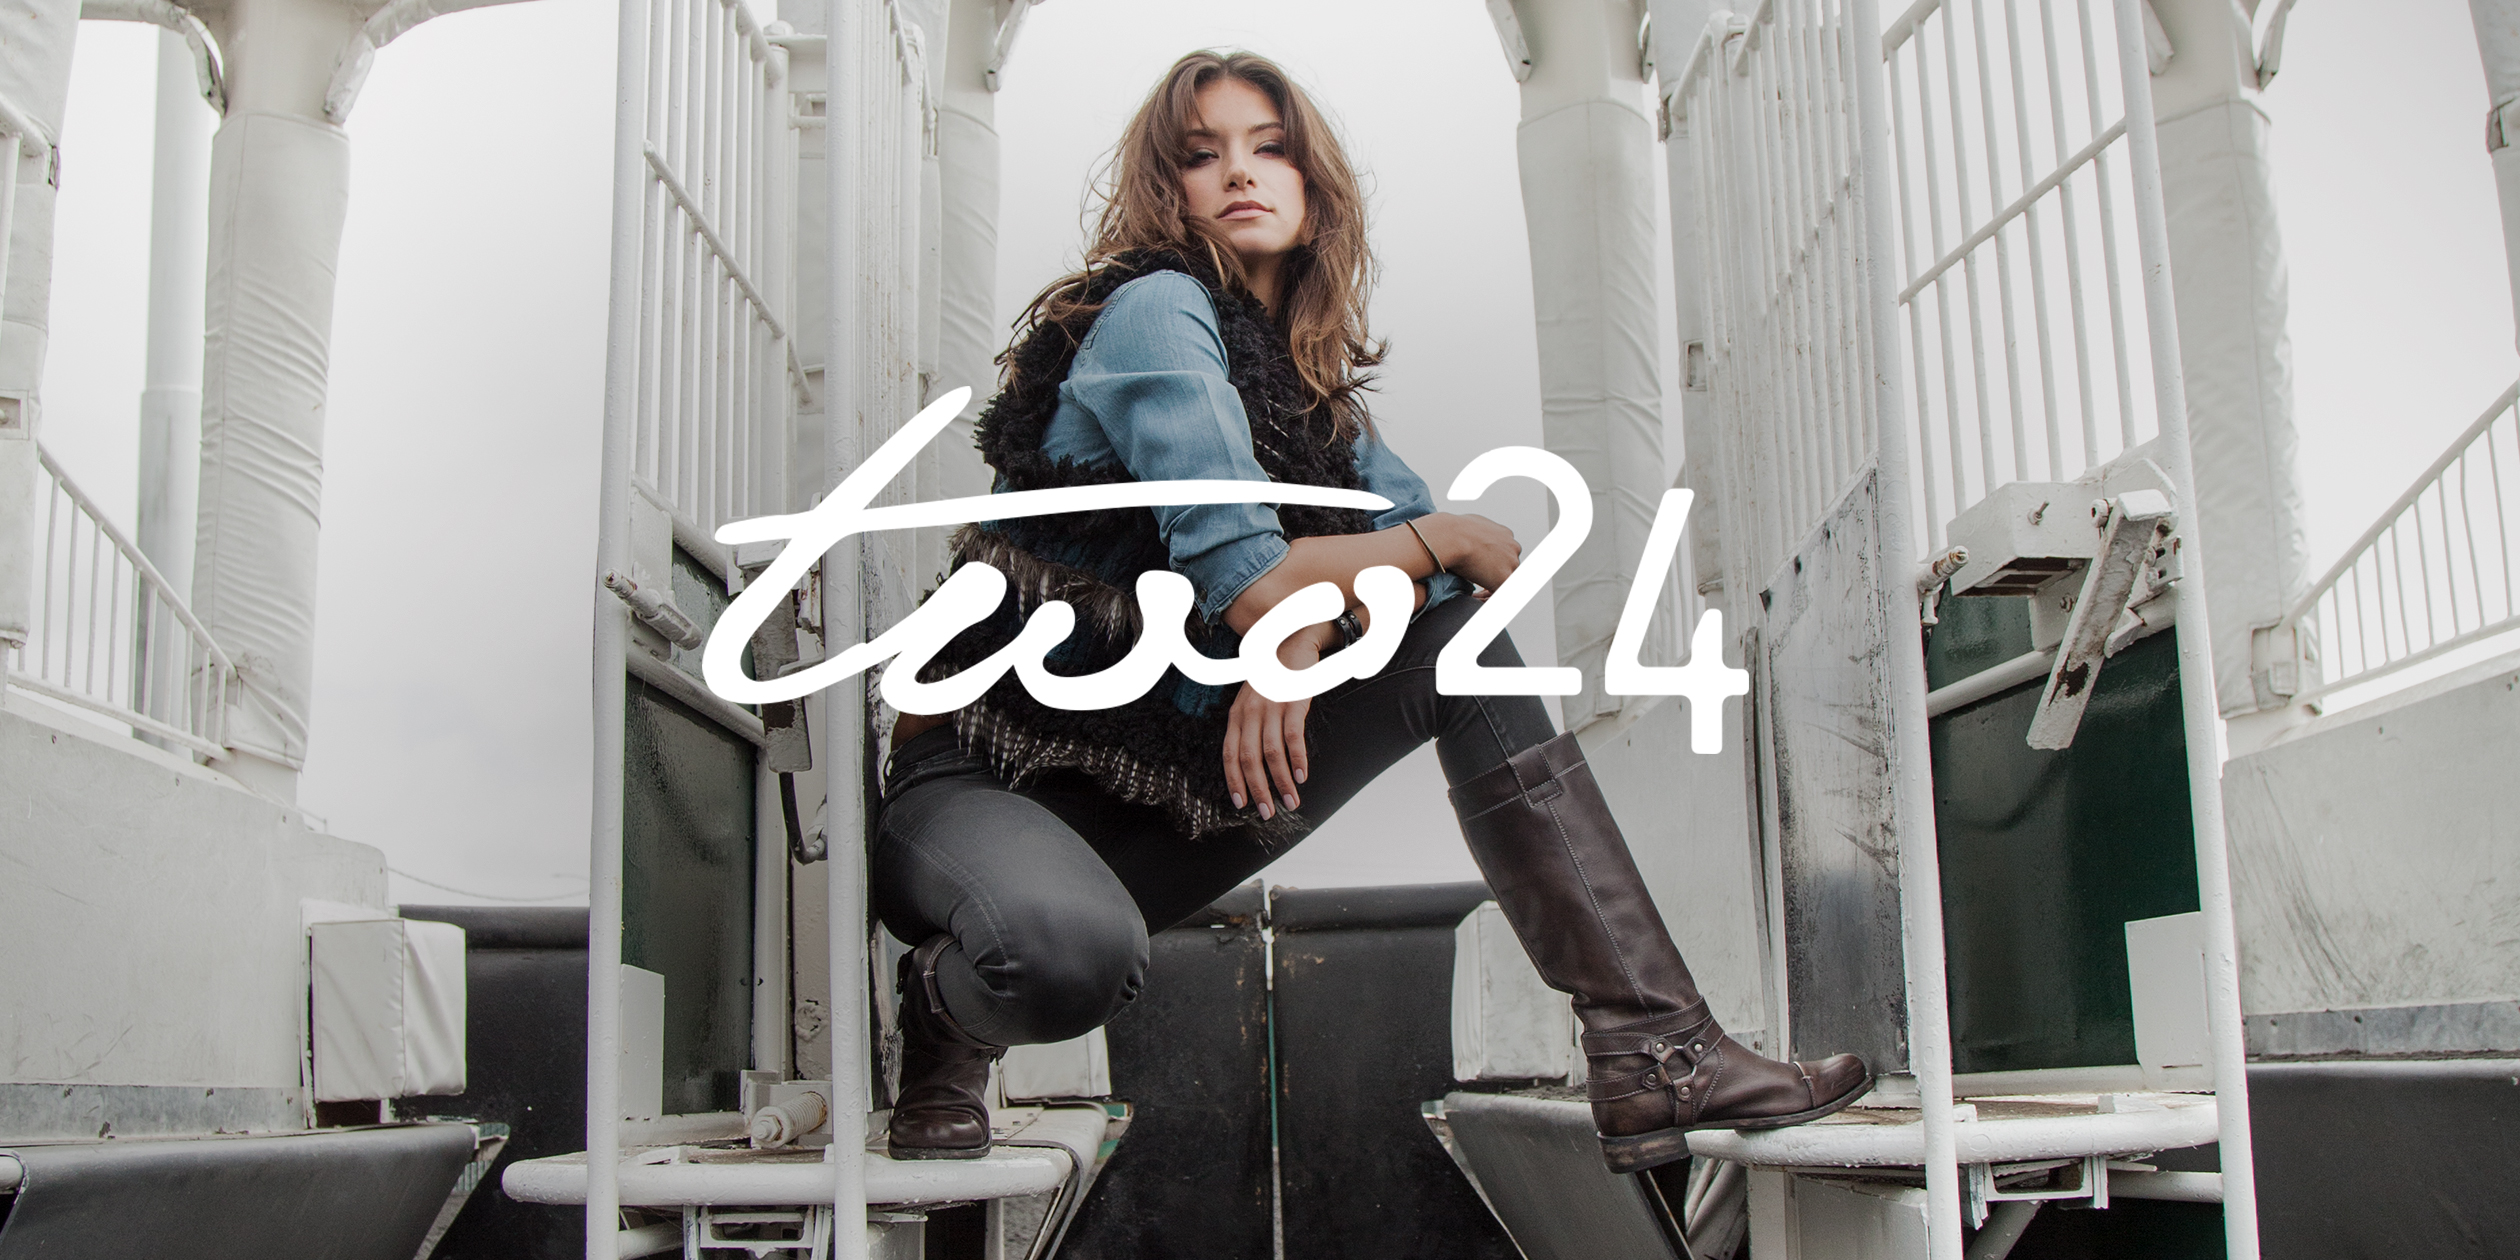 Women posing in highly fashionable boots with Ariat Two 24 logo imposed over image